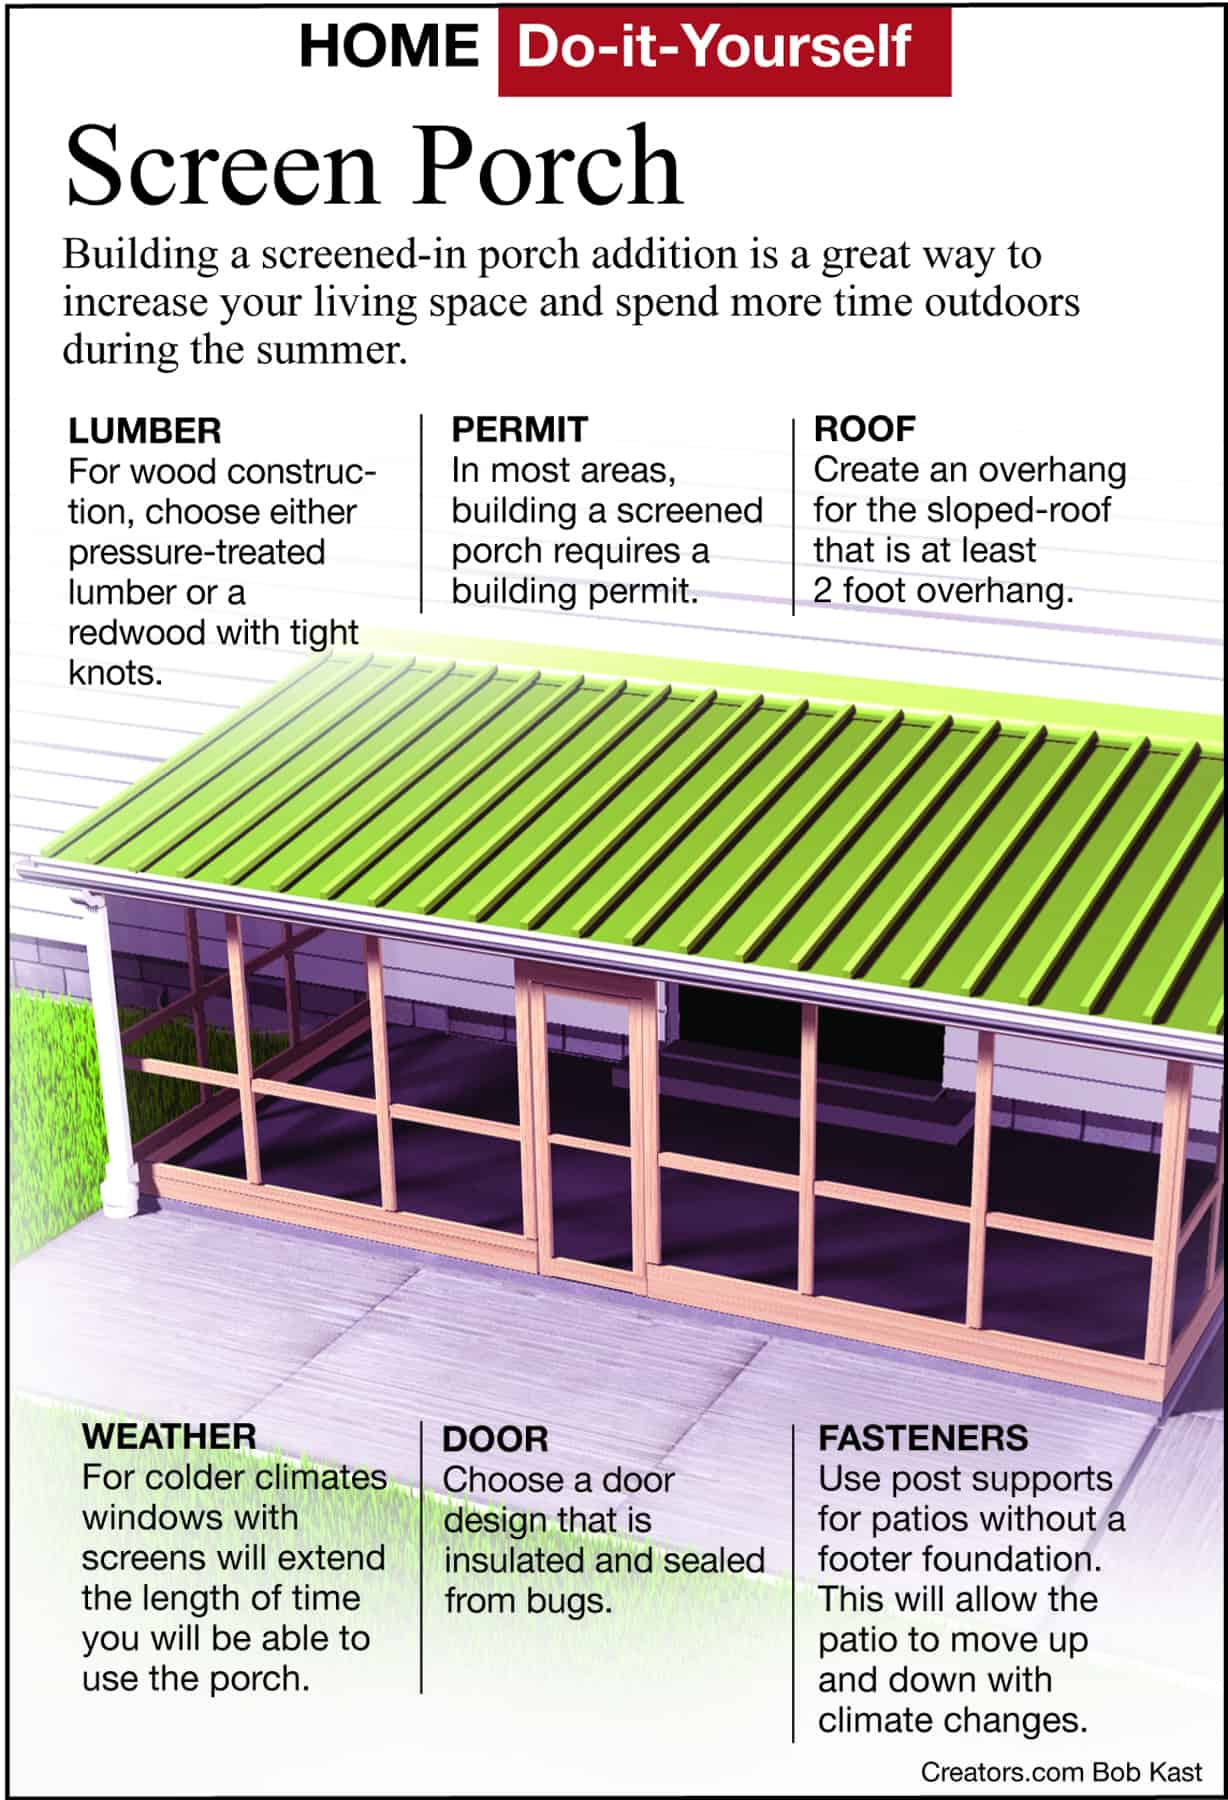 How to build an amazing screened in porch yourself for this reason dont plan to rigidly attach the house side of the porch beam to the house the house in on footers and will not move solutioingenieria Choice Image